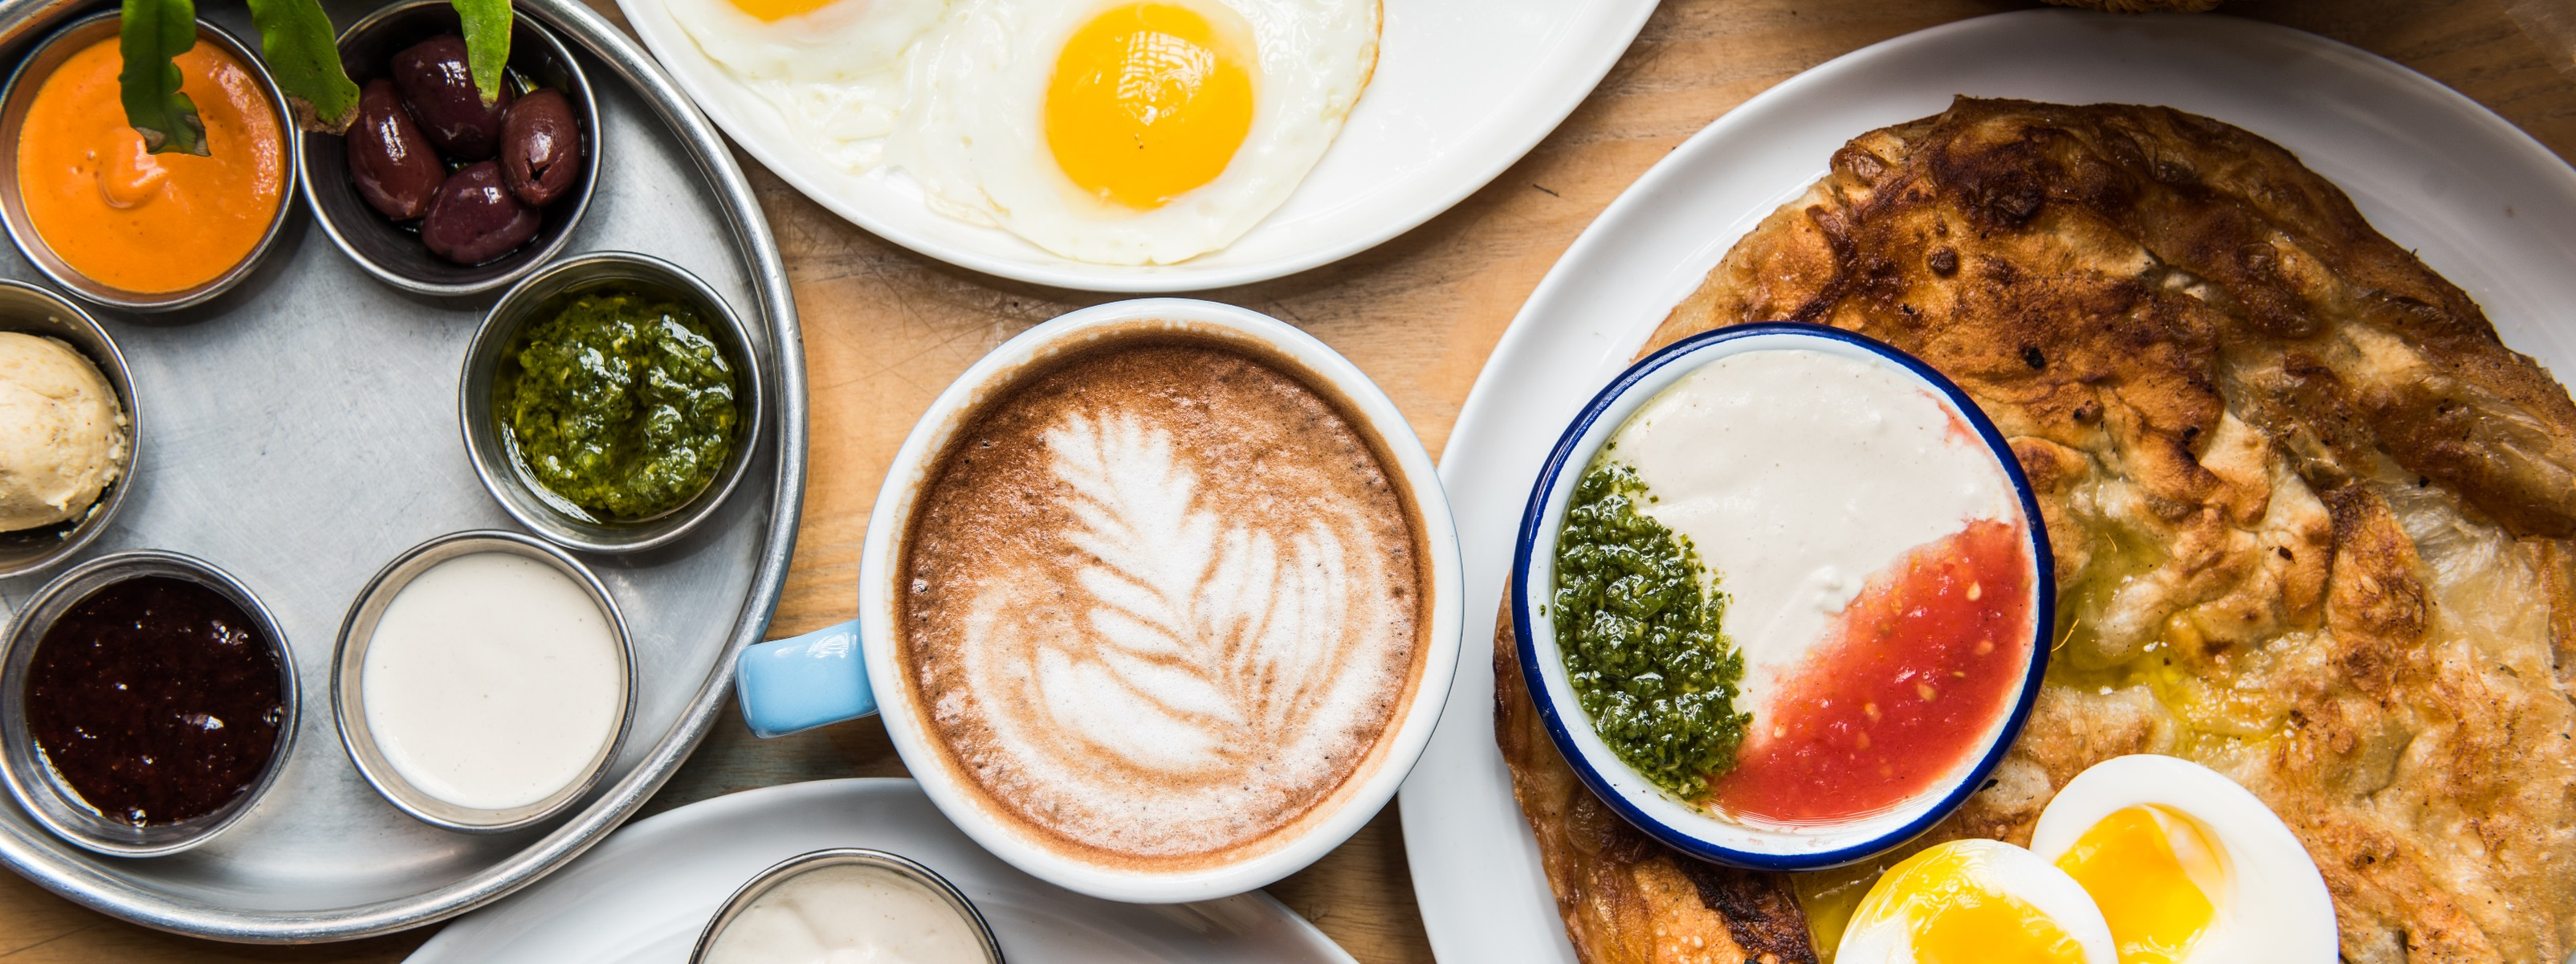 The Best Brunch Spots In Williamsburg - New York - The